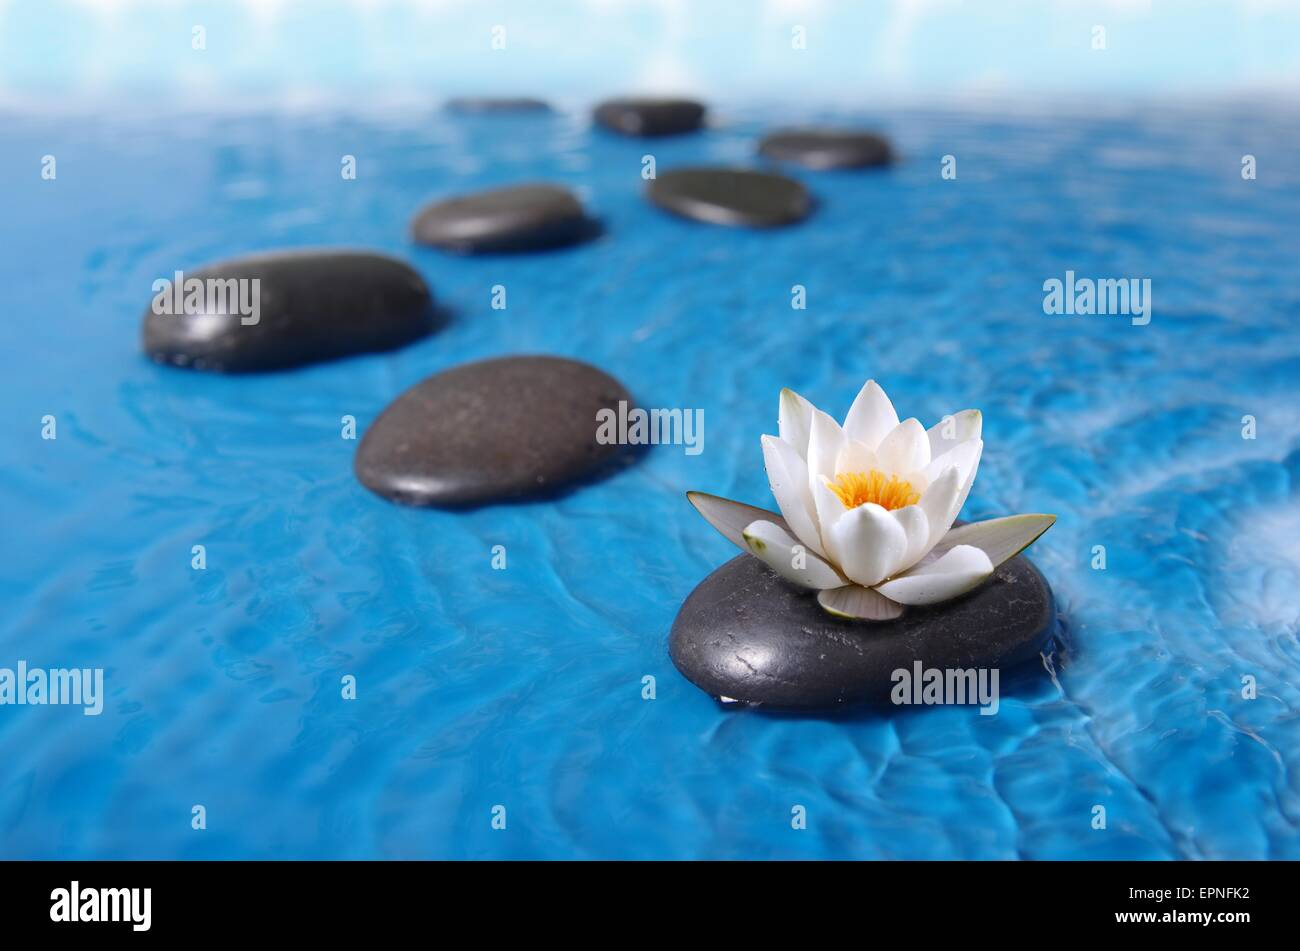 zen stones in blue water with lily - Stock Image